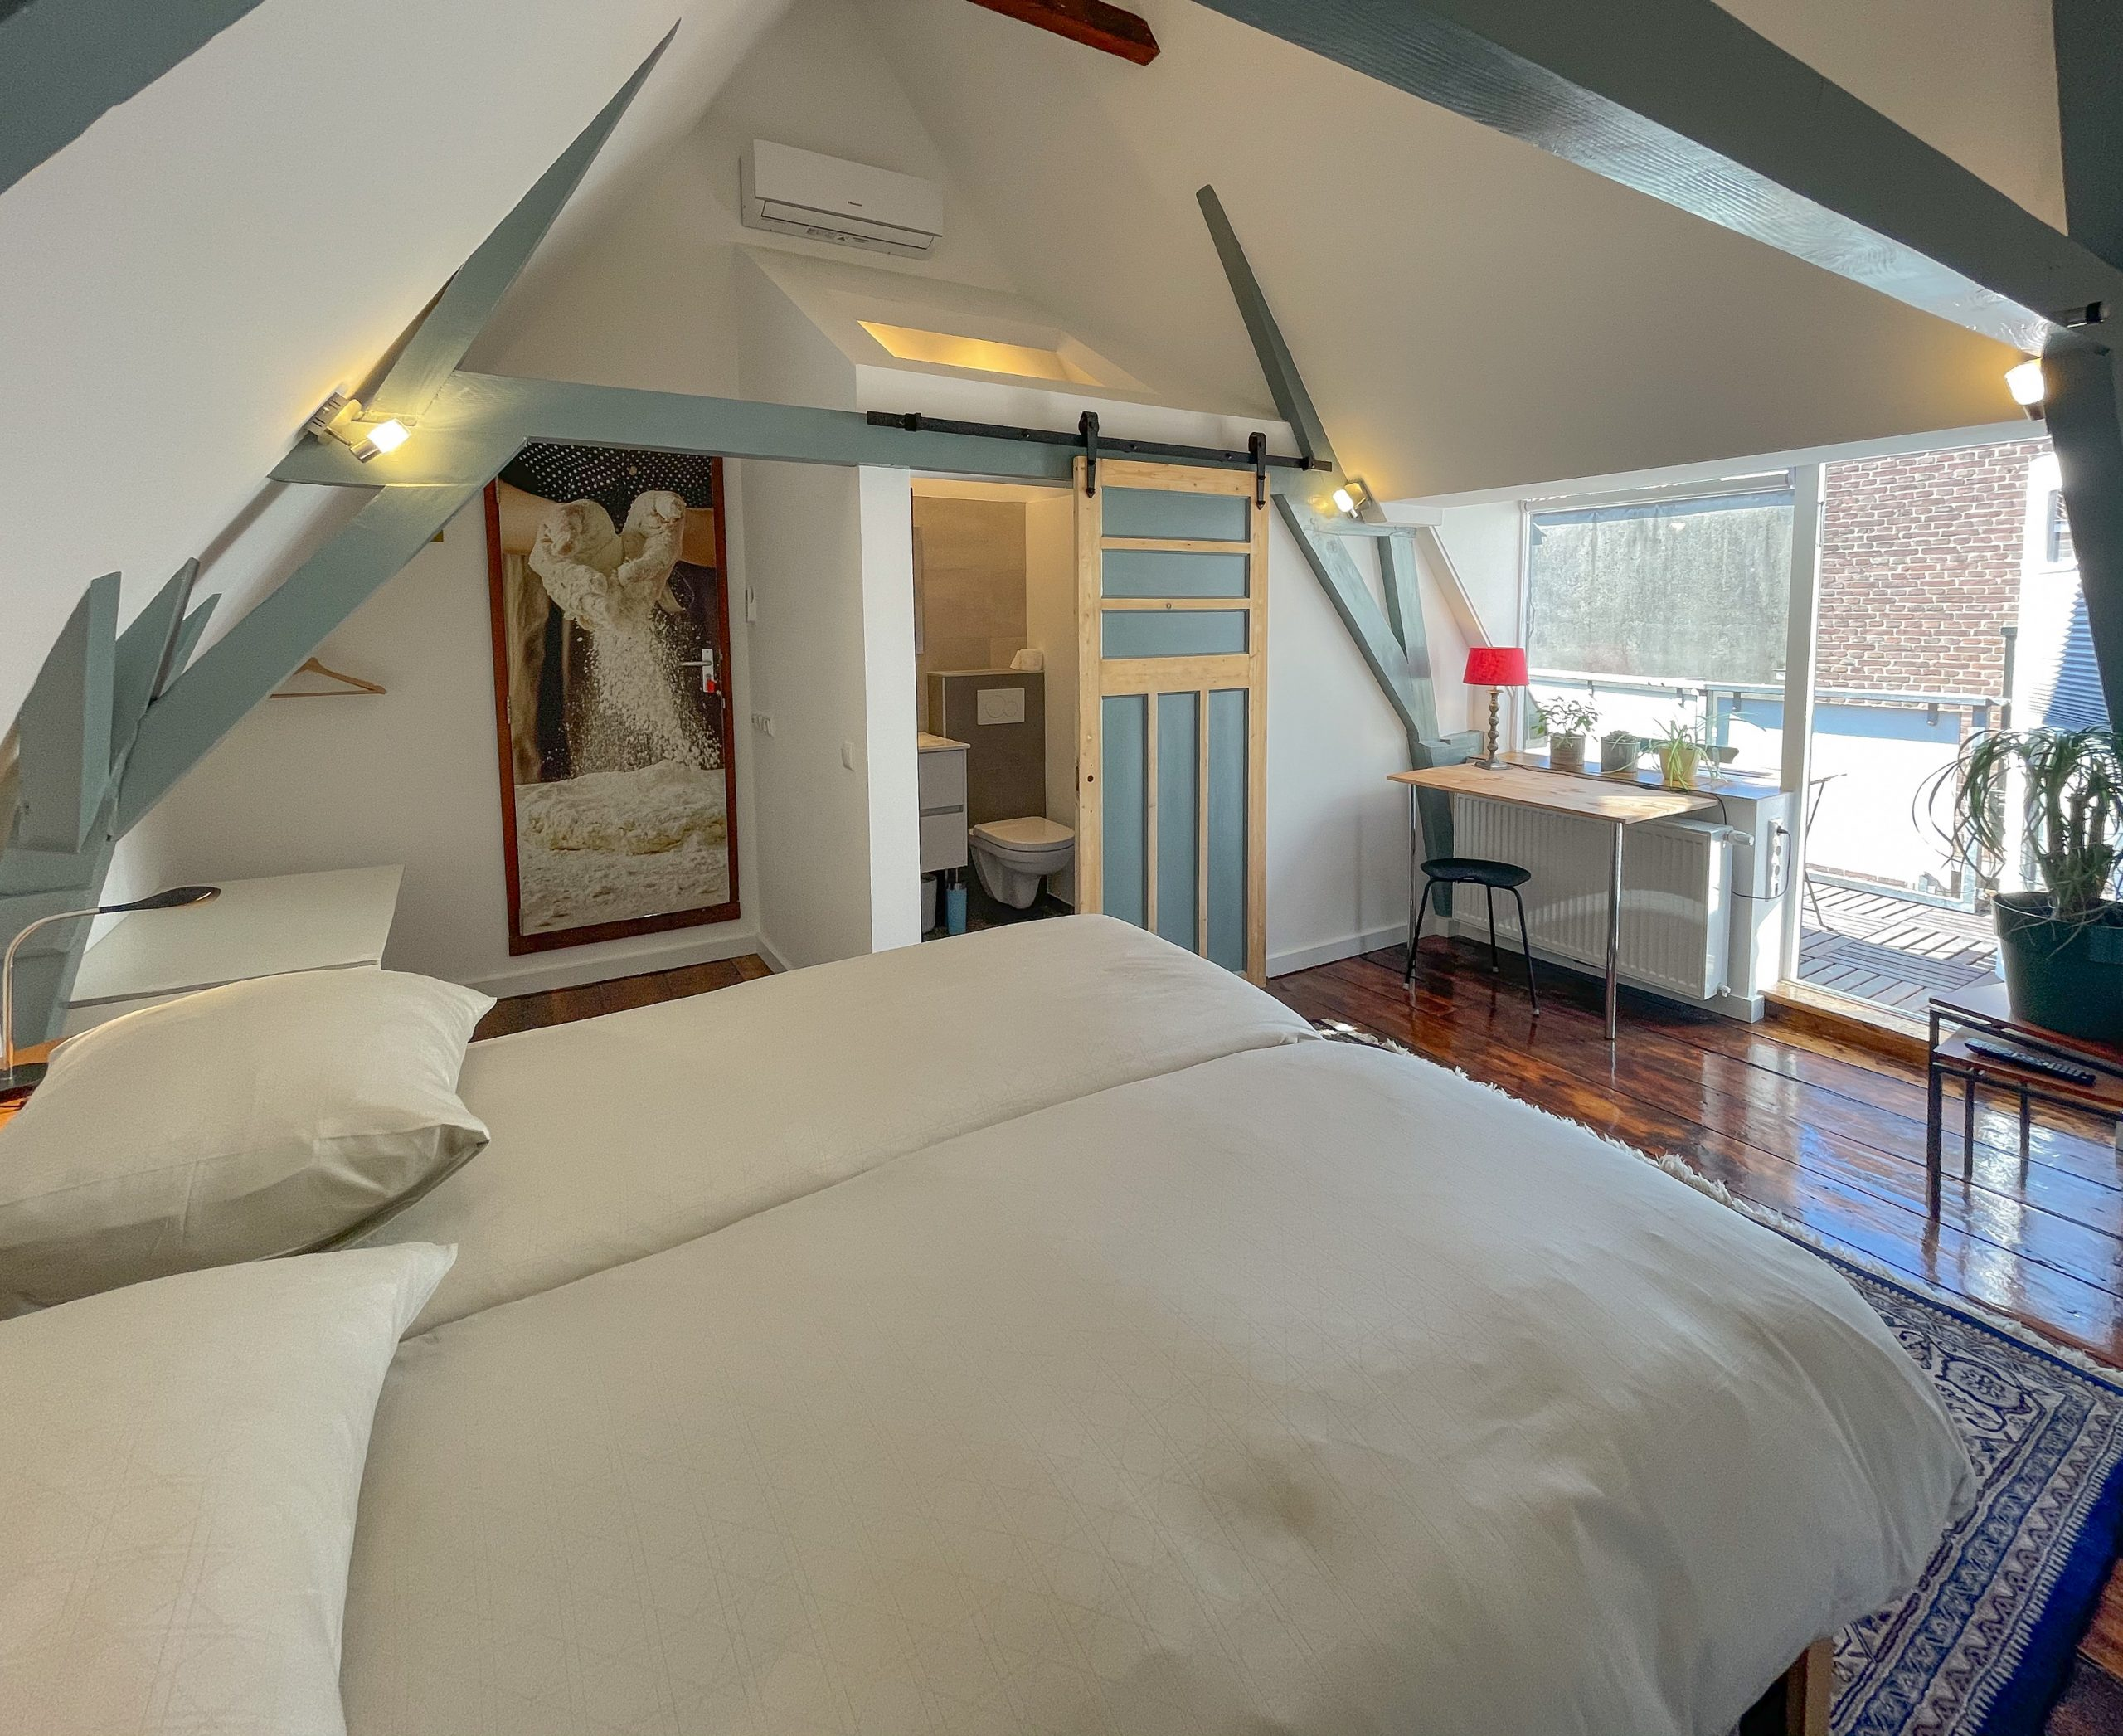 Light room with exposed beams, wooden floor, one large bed, a private bathroom, a desk, chair and access to the private bathroom, as well as to the roof terrace